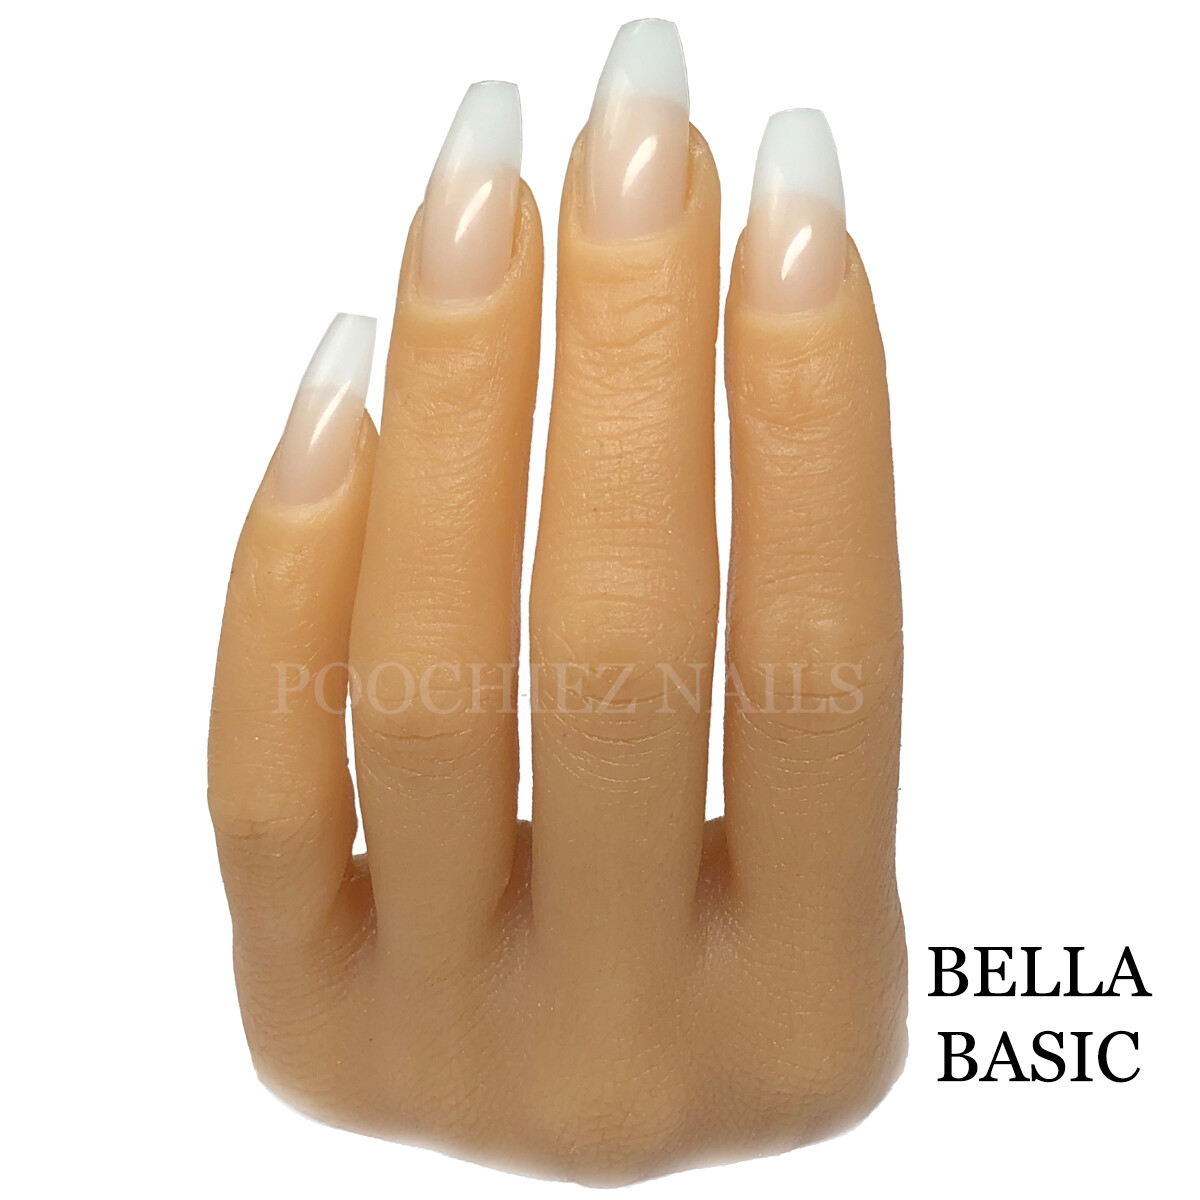 BB BELLA BASIC HALF HAND ( PLEASE READ THE DIRECTIONS & WATCH ALL VIDEOS. COMES WITH NAIL TIPS.